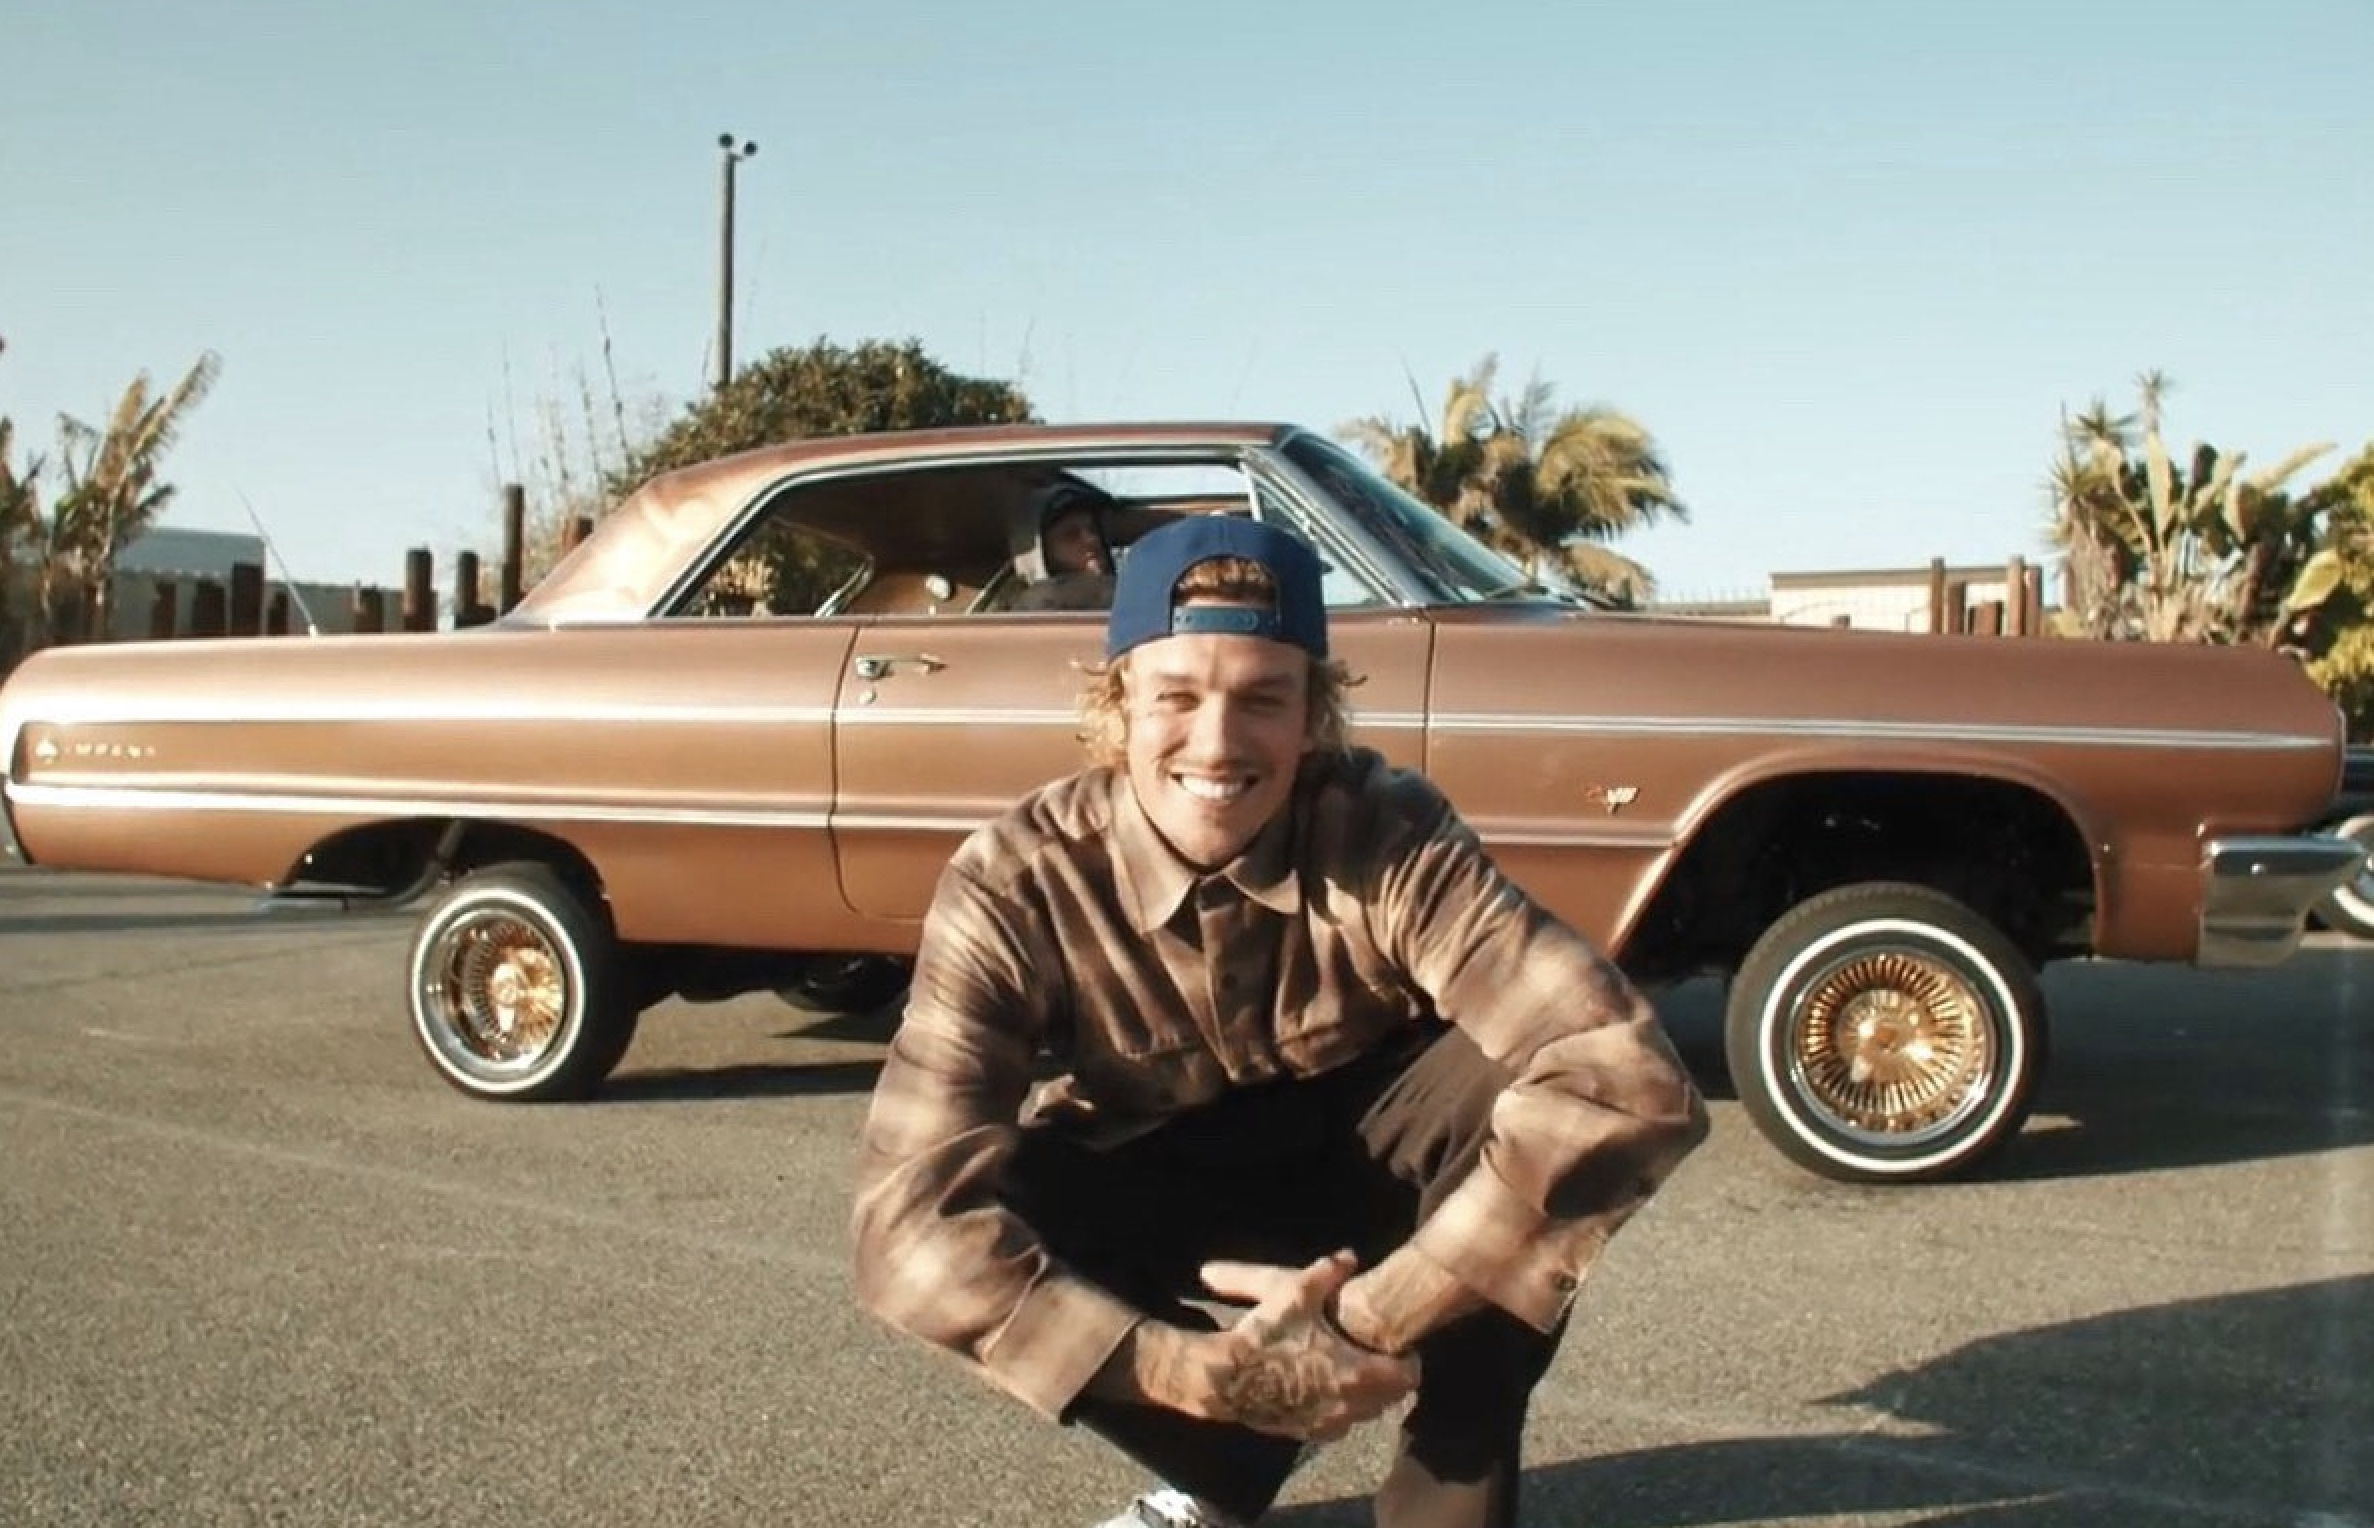 PREMIERE: DENM Releases New Single & Video For 'Califas' Featuring Jared Watson of Dirty Heads